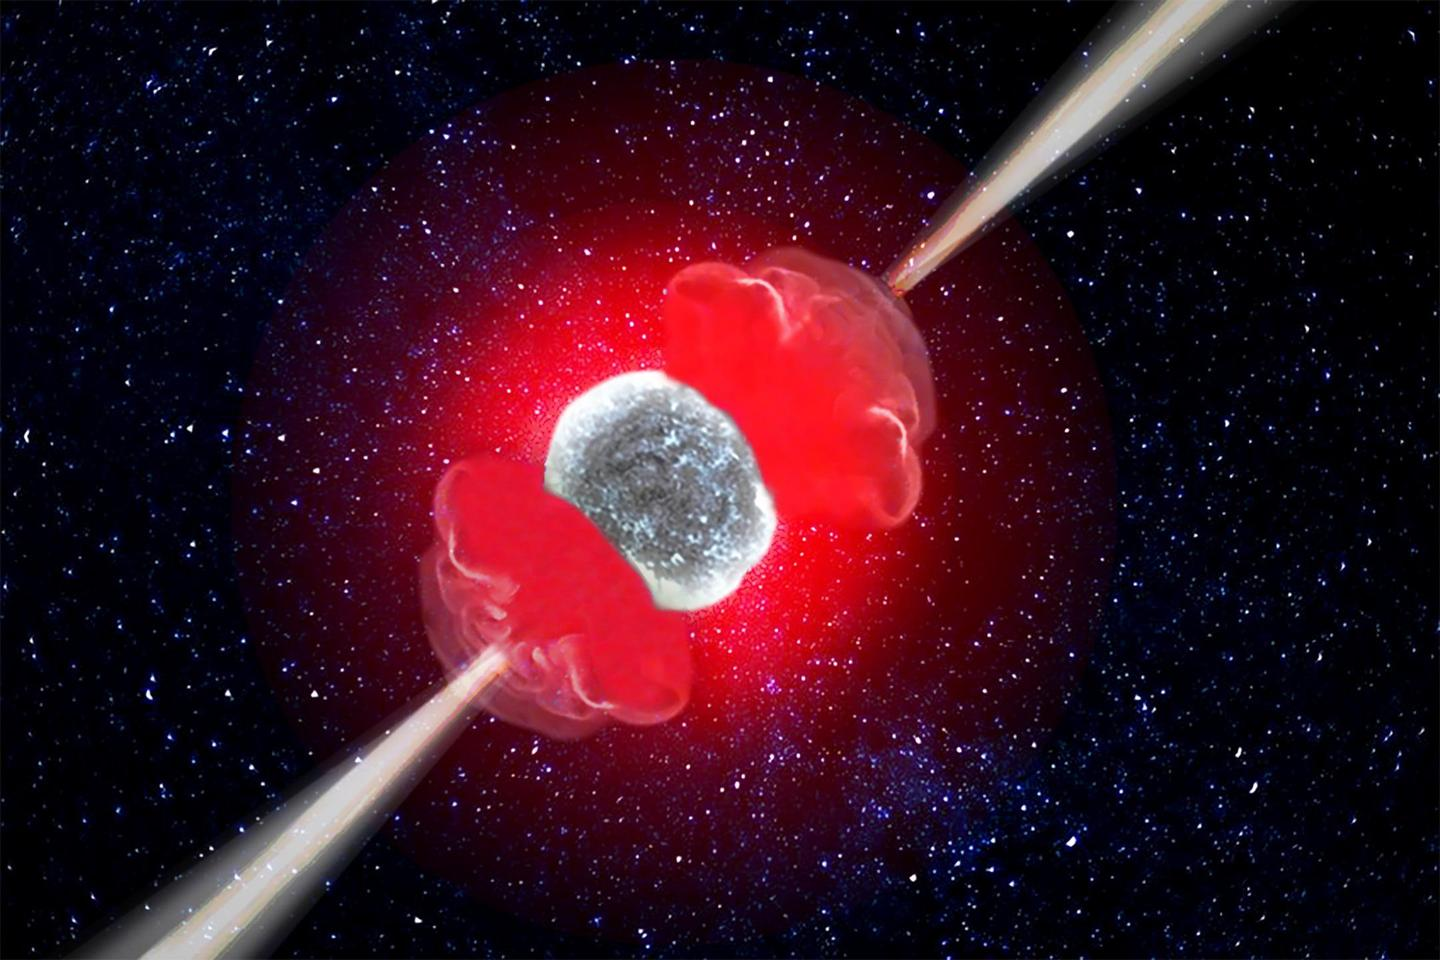 An artist's illustration of a hypernova, a type of stellar explosion up to 10 times more energetic than a supernova